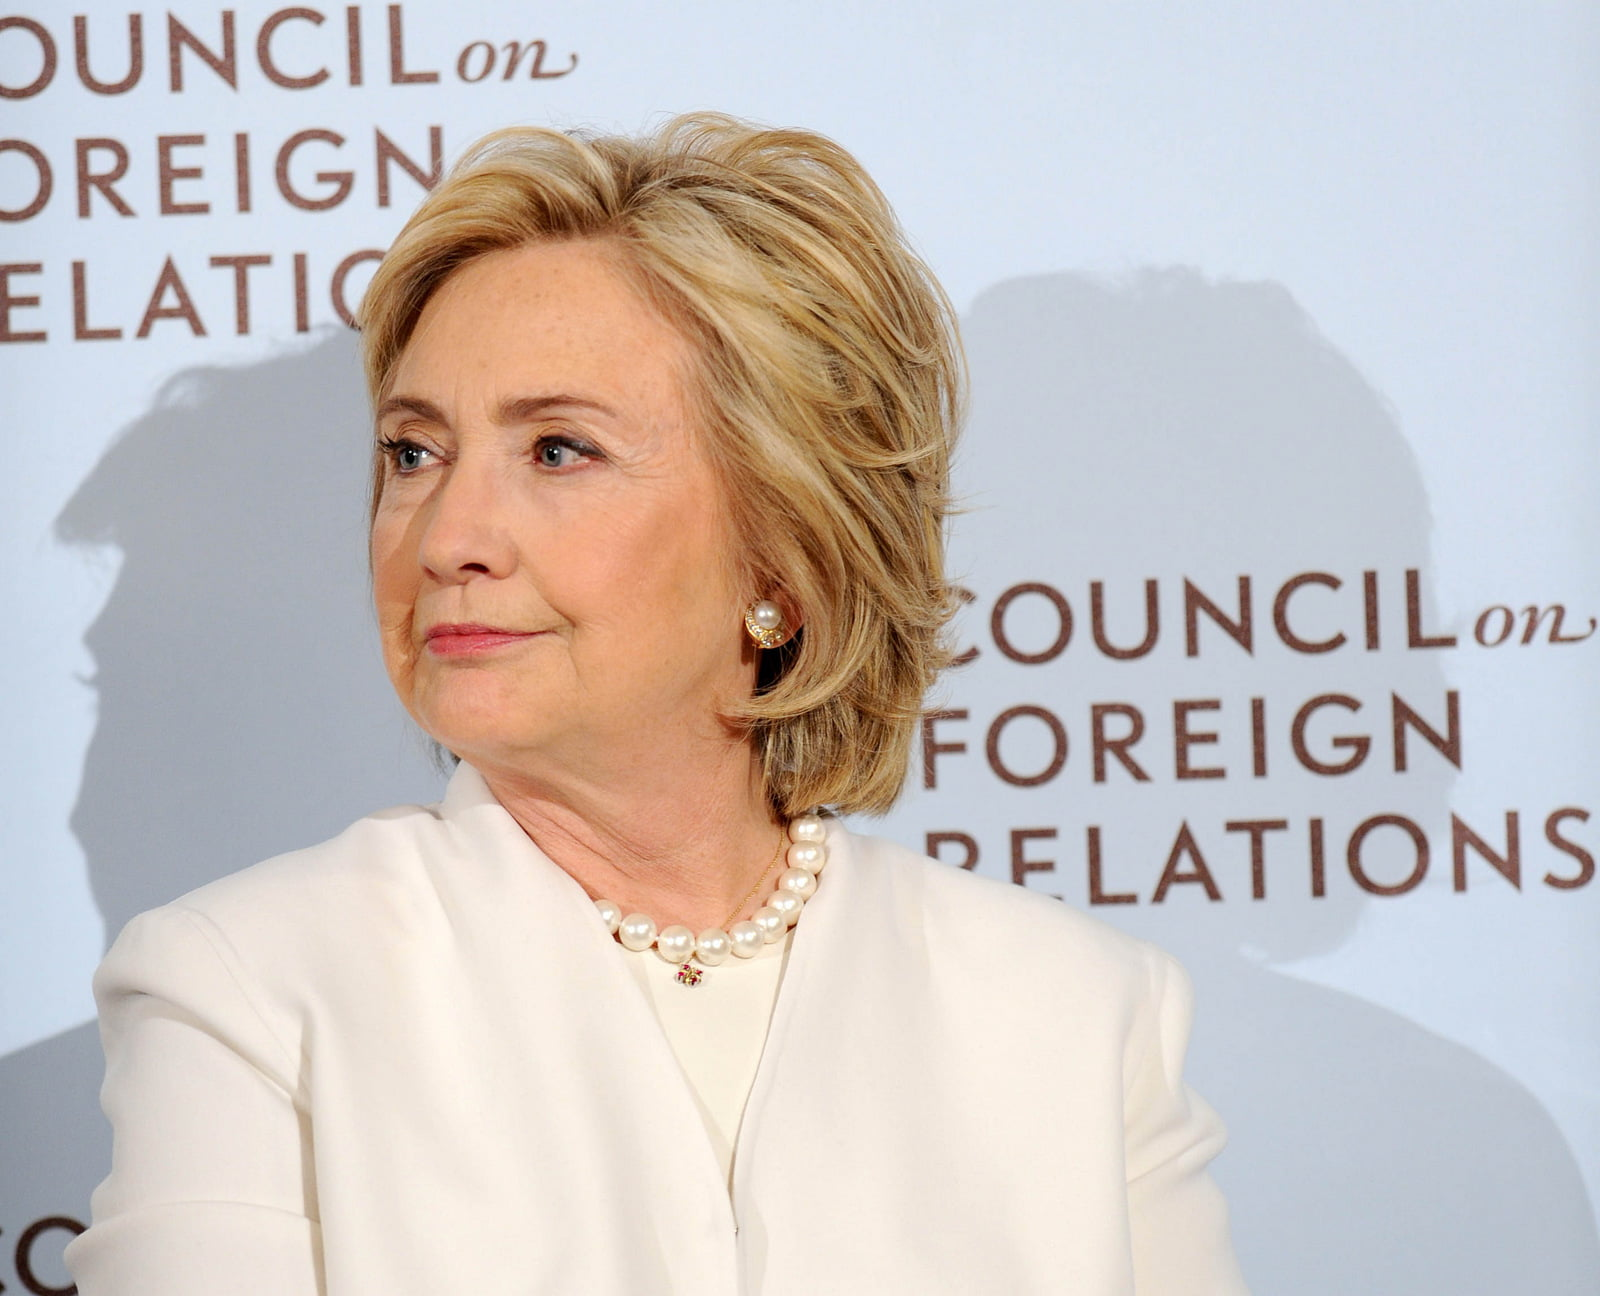 Hillary Clinton announces her campaign agenda at a Council on Foreign Relations event in Manhattan, New York, Nov, 2015. (Photo: GWR/STAR MAX/IPx)